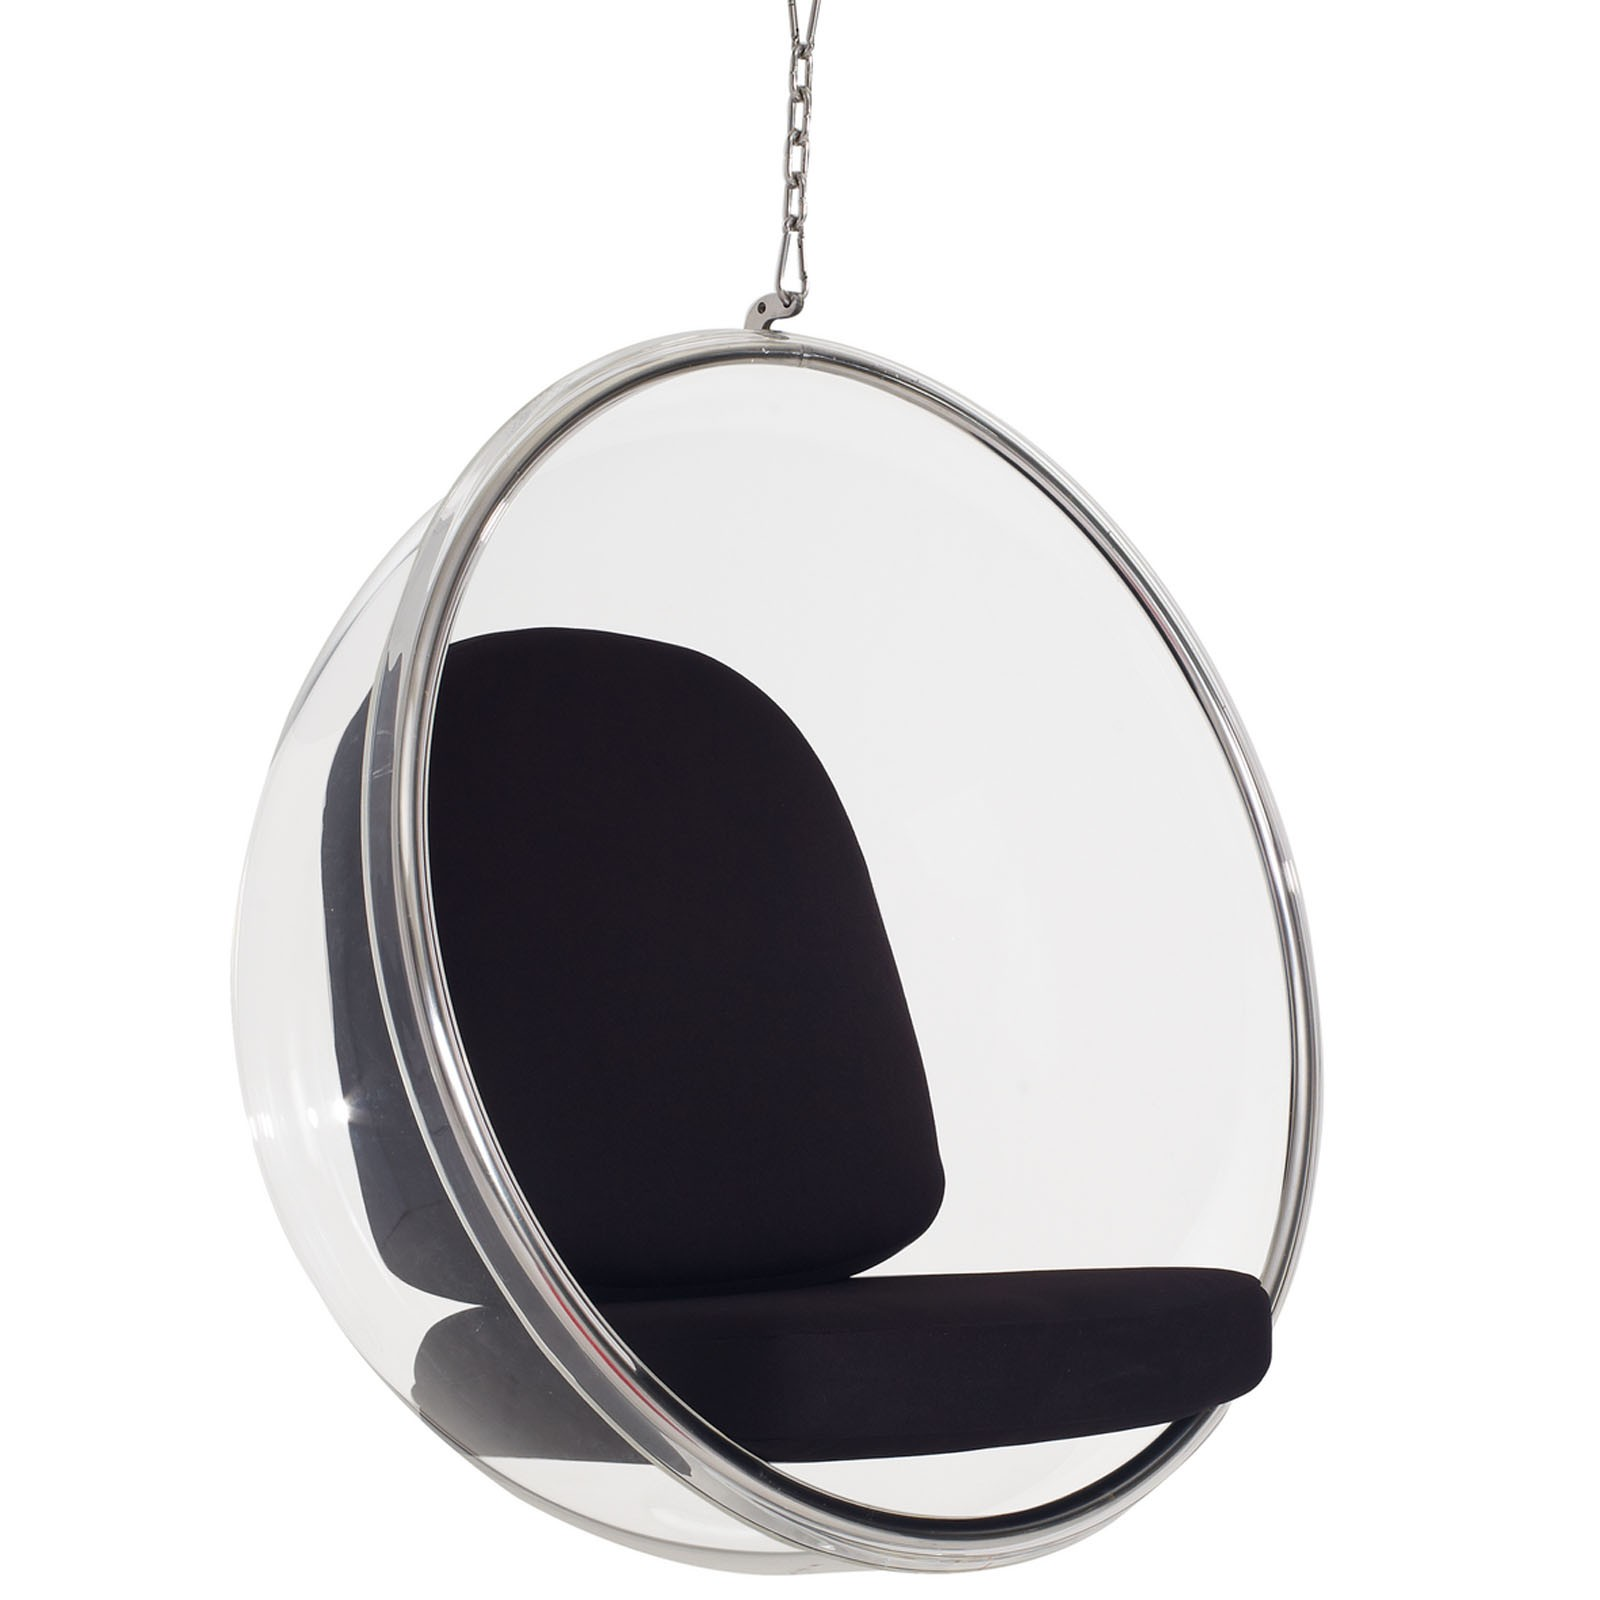 Oval lounge chair - Ring Lounge Chair